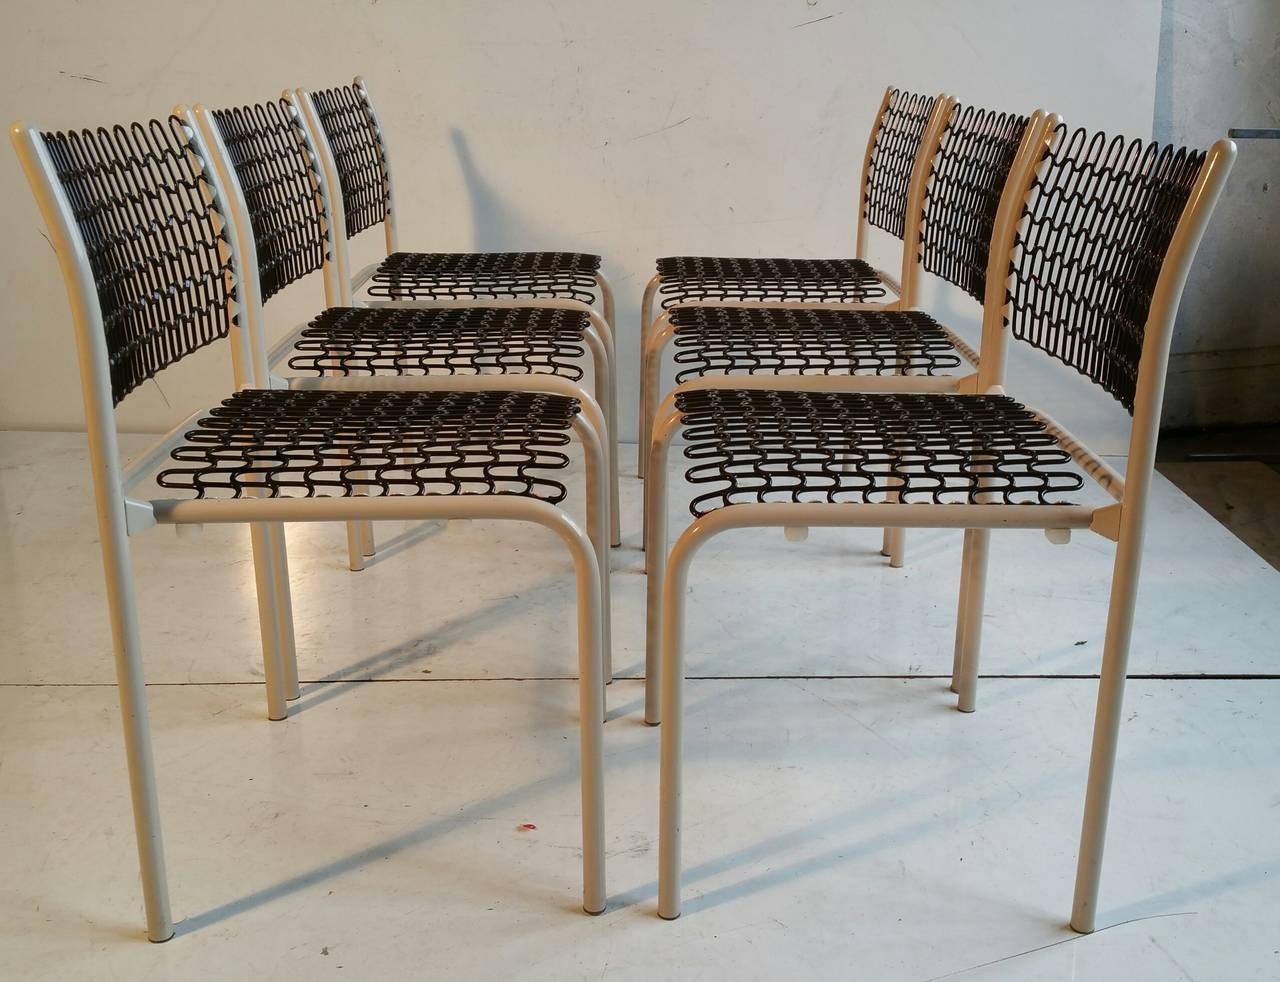 david rowland metal chair garden covers amazon set of six thonet sof tek stacking chairs by roland